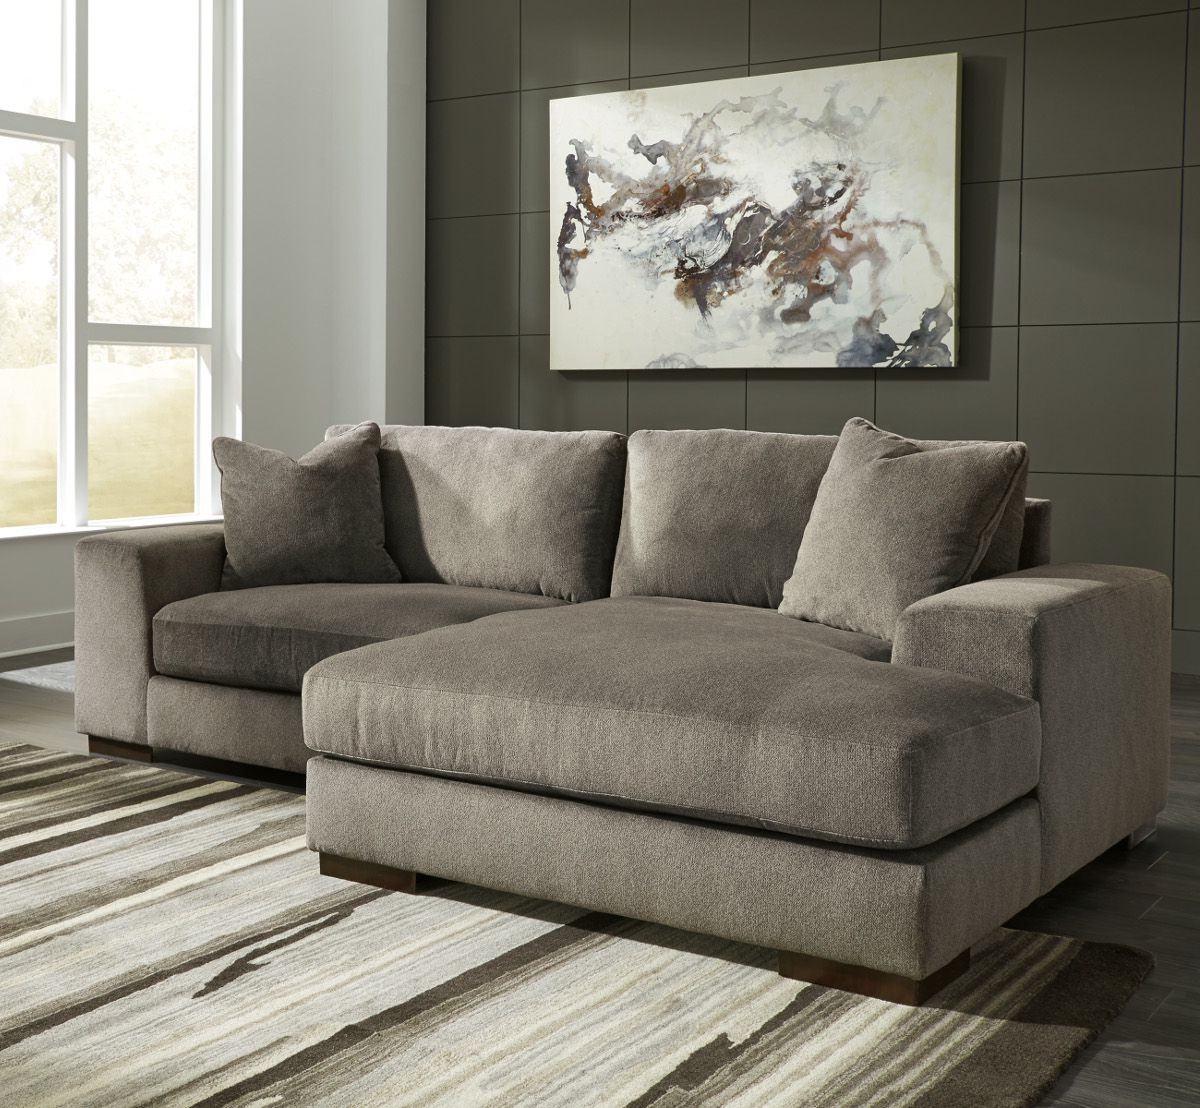 Ashley Furniture Manzani 2 Piece Sectional With Laf Chaise In Inside Latest Aspen 2 Piece Sectionals With Laf Chaise (Gallery 12 of 20)